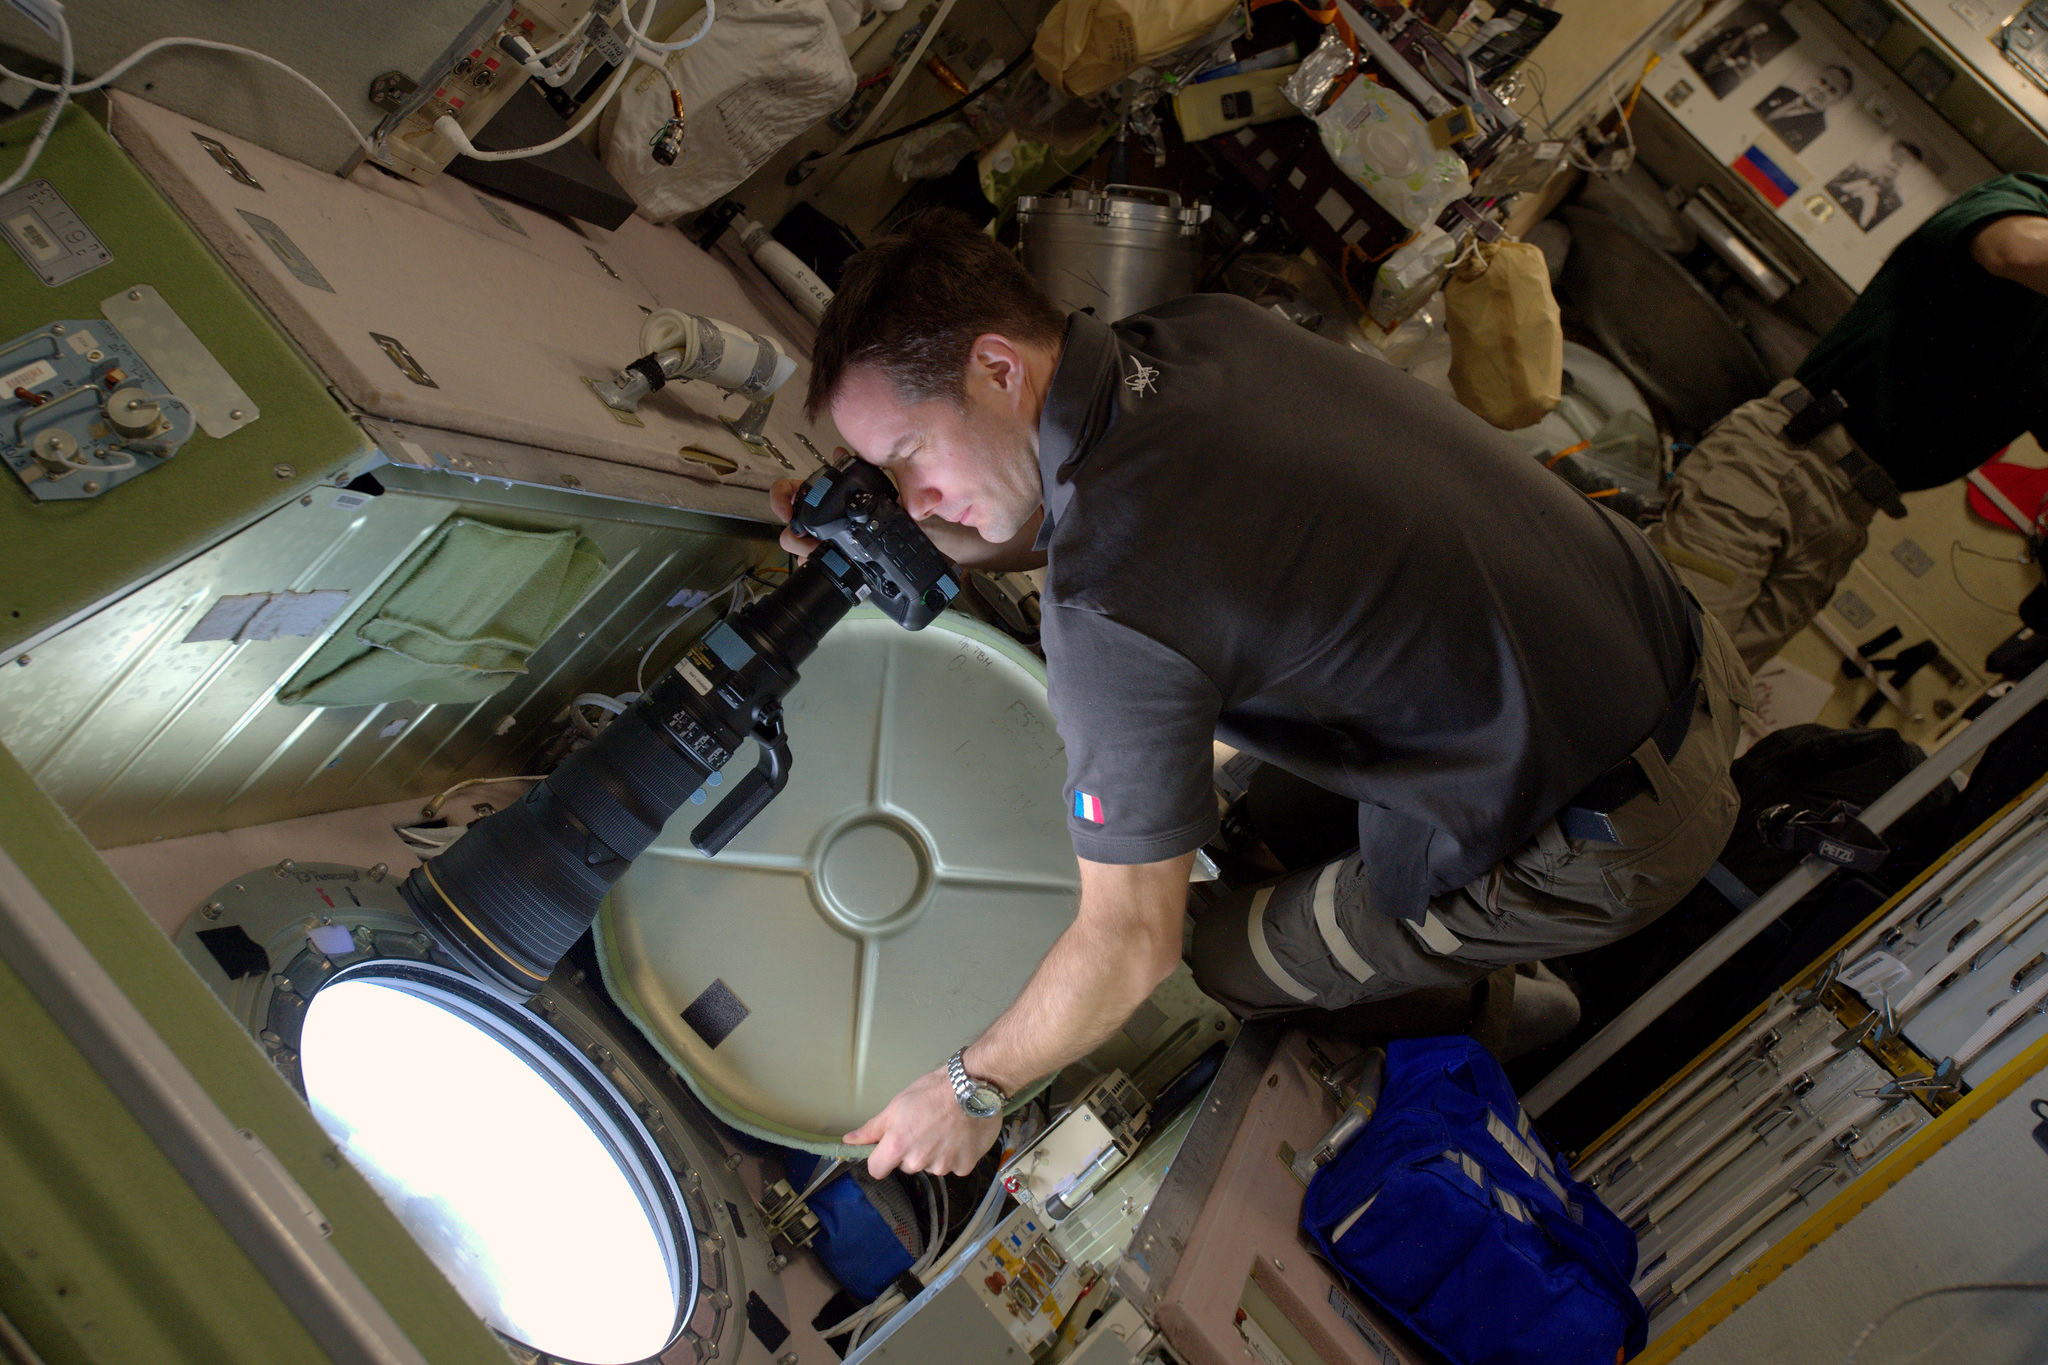 French Astronaut Thomas Pesquet's Amazing Photos from Space (Gallery)